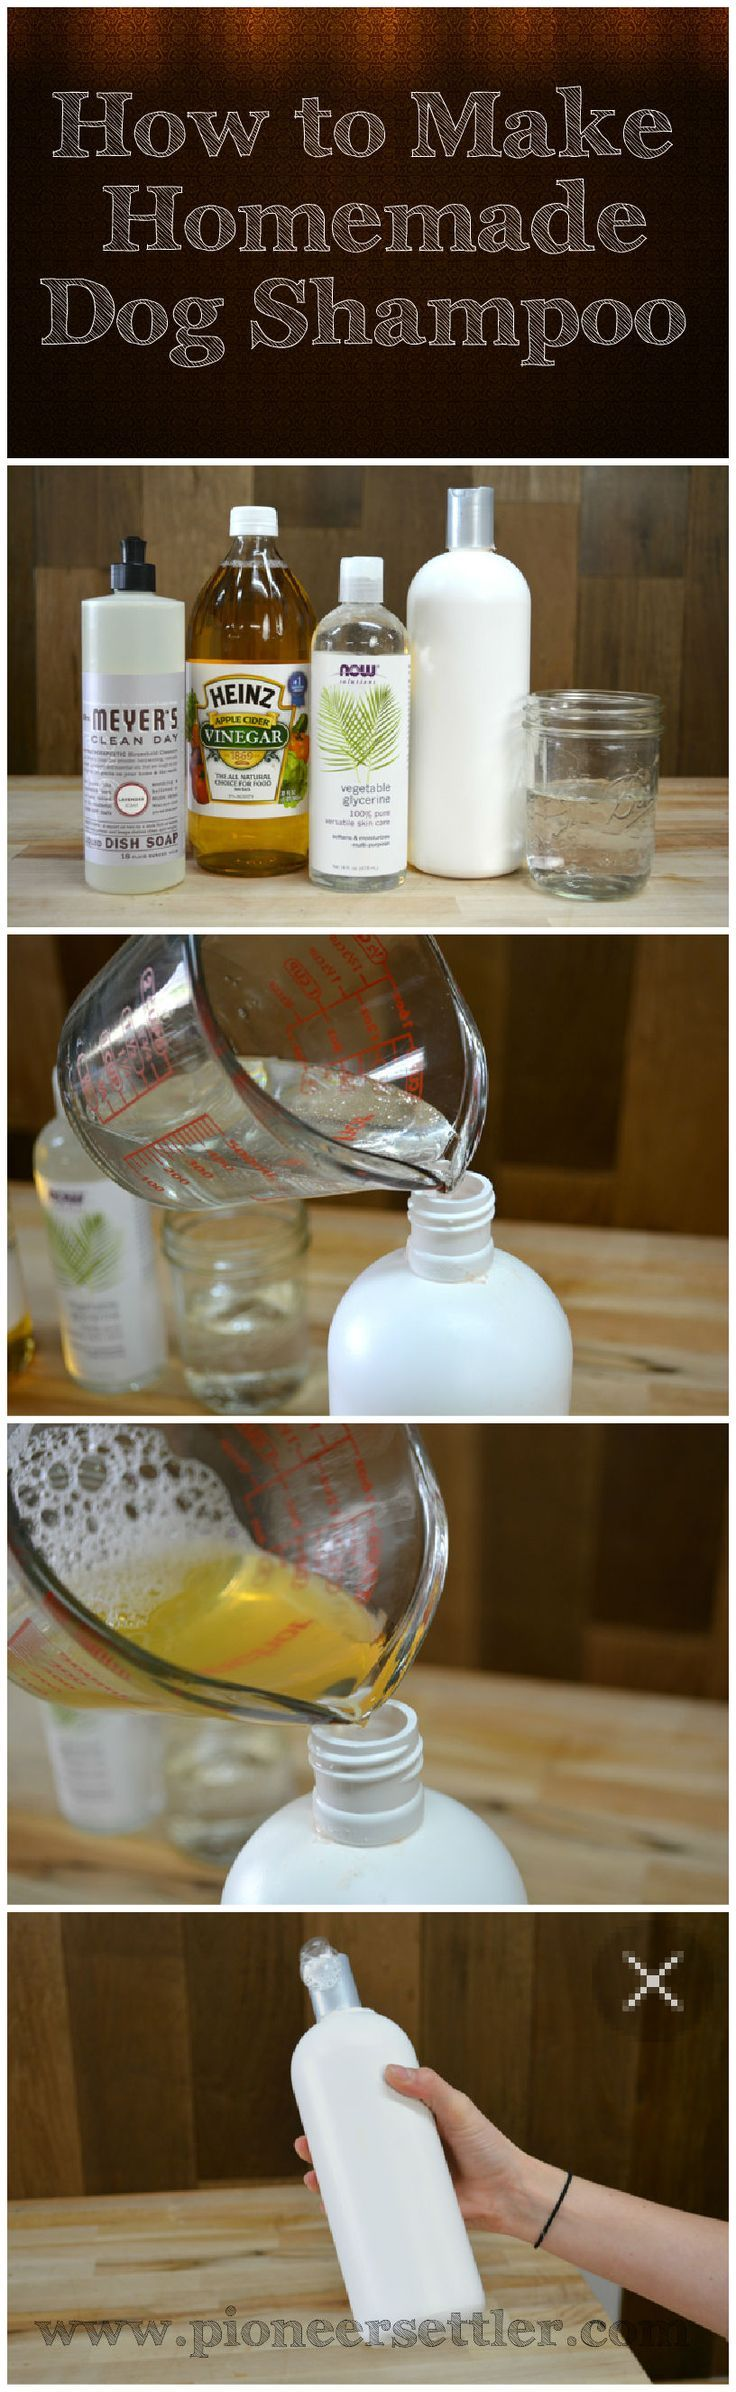 How To Make Homemade Dog Shampoo | Easy recipe anyone can make, natural and inexpensive methods for washing your dog that all beat buying the chemical laden commercial shampoos. #pioneersettler